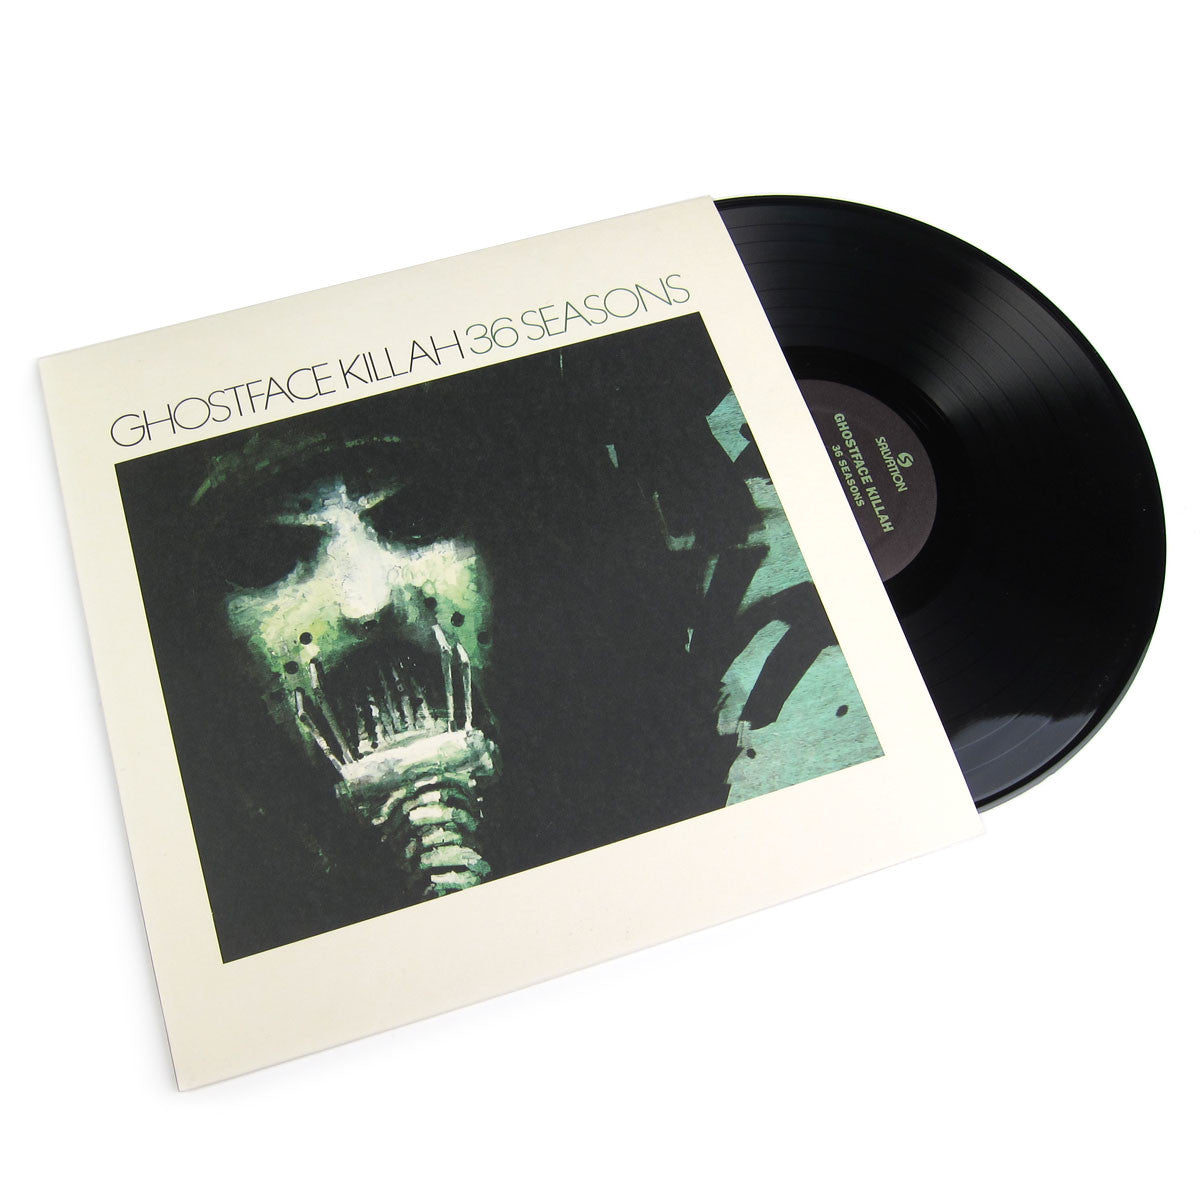 Ghostface Killah: 36 Seasons Vinyl LP